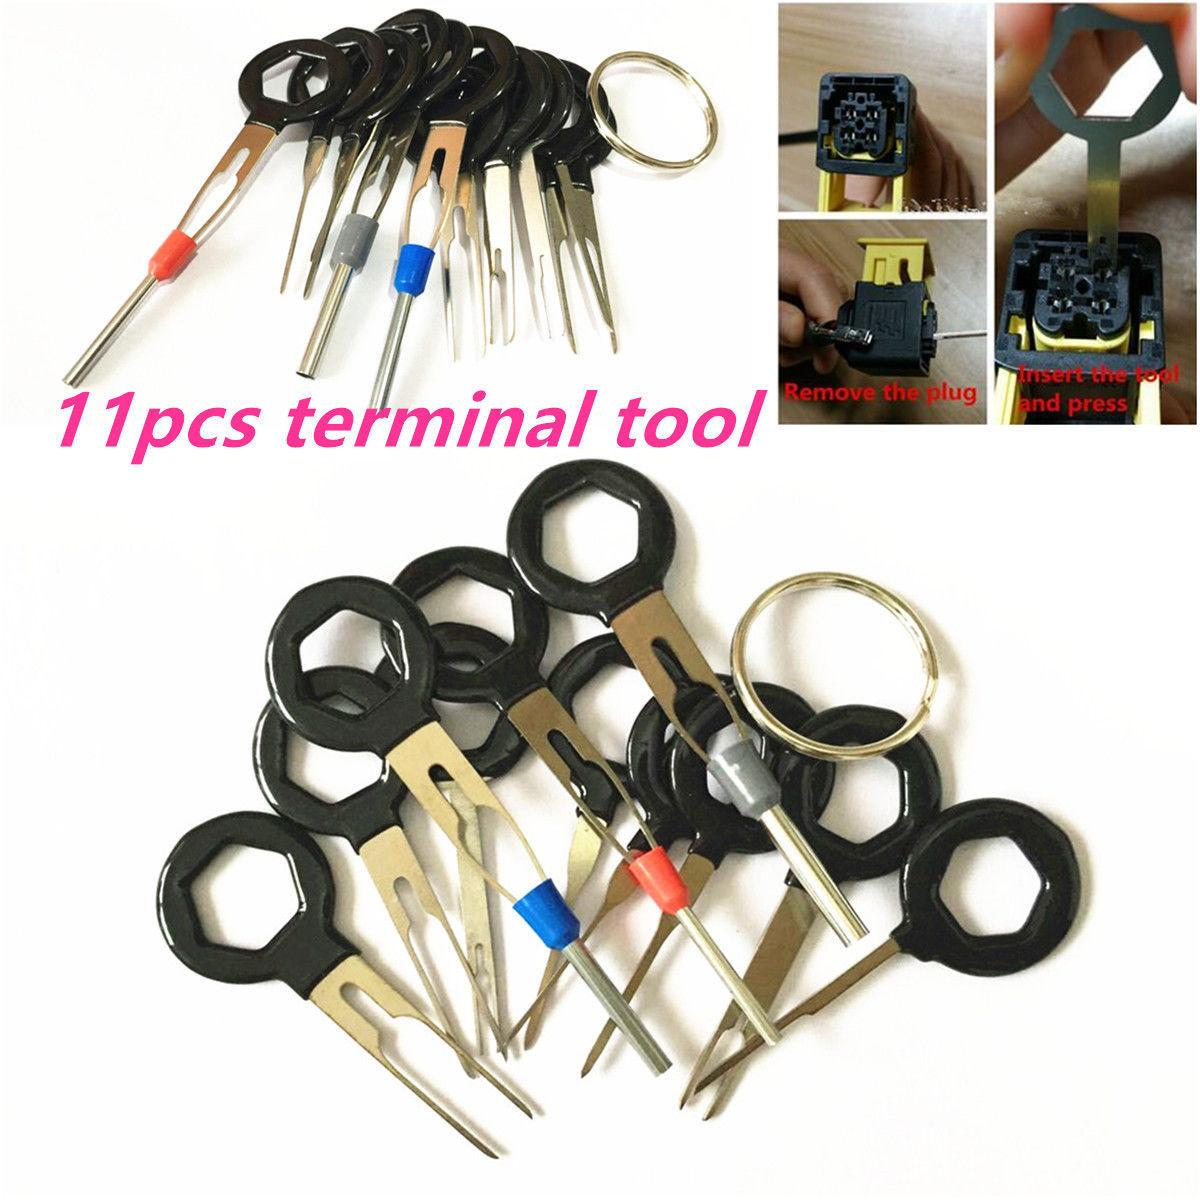 hight resolution of 2019 auto car circuit board plug wire harness terminal extractor pick connector crimp pin back needle remove car repair tool from jihua company